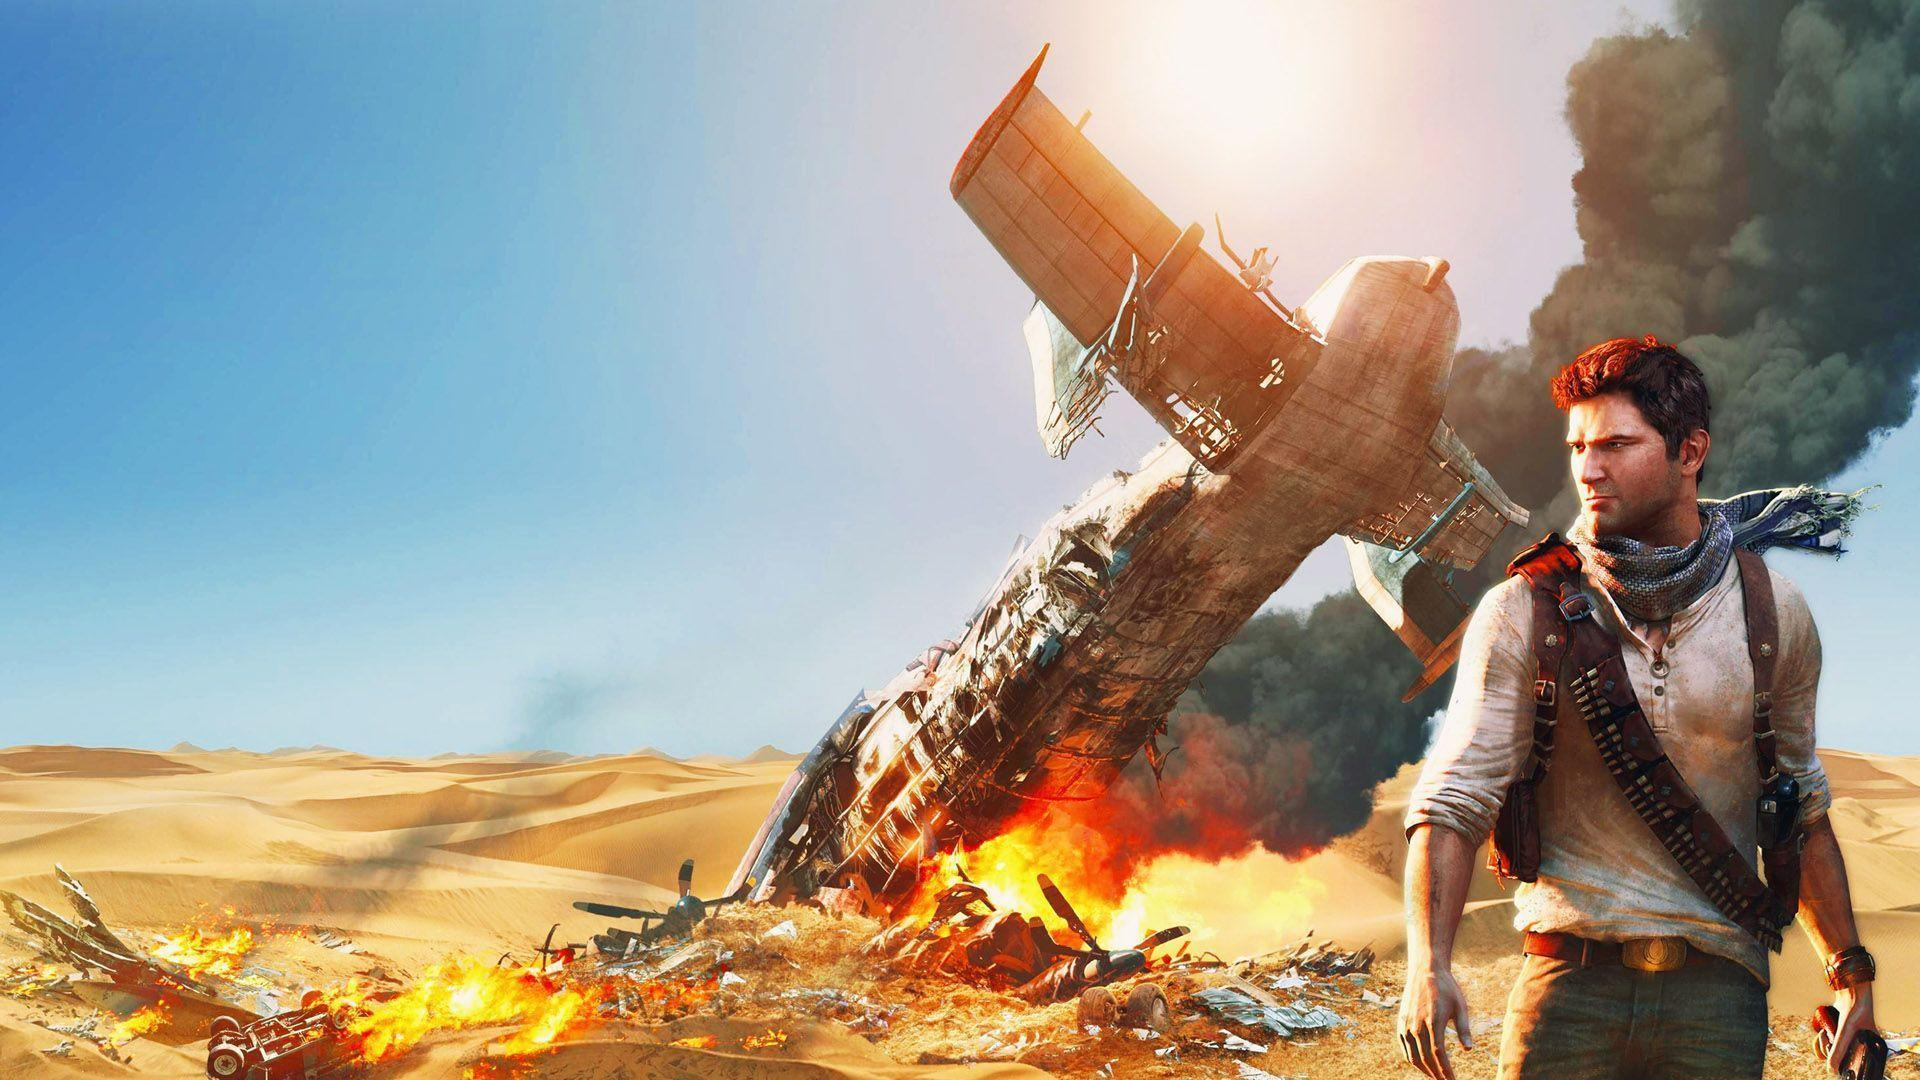 Full Hd Live Wallpaper For Laptop Uncharted Wallpapers Wallpaper Cave